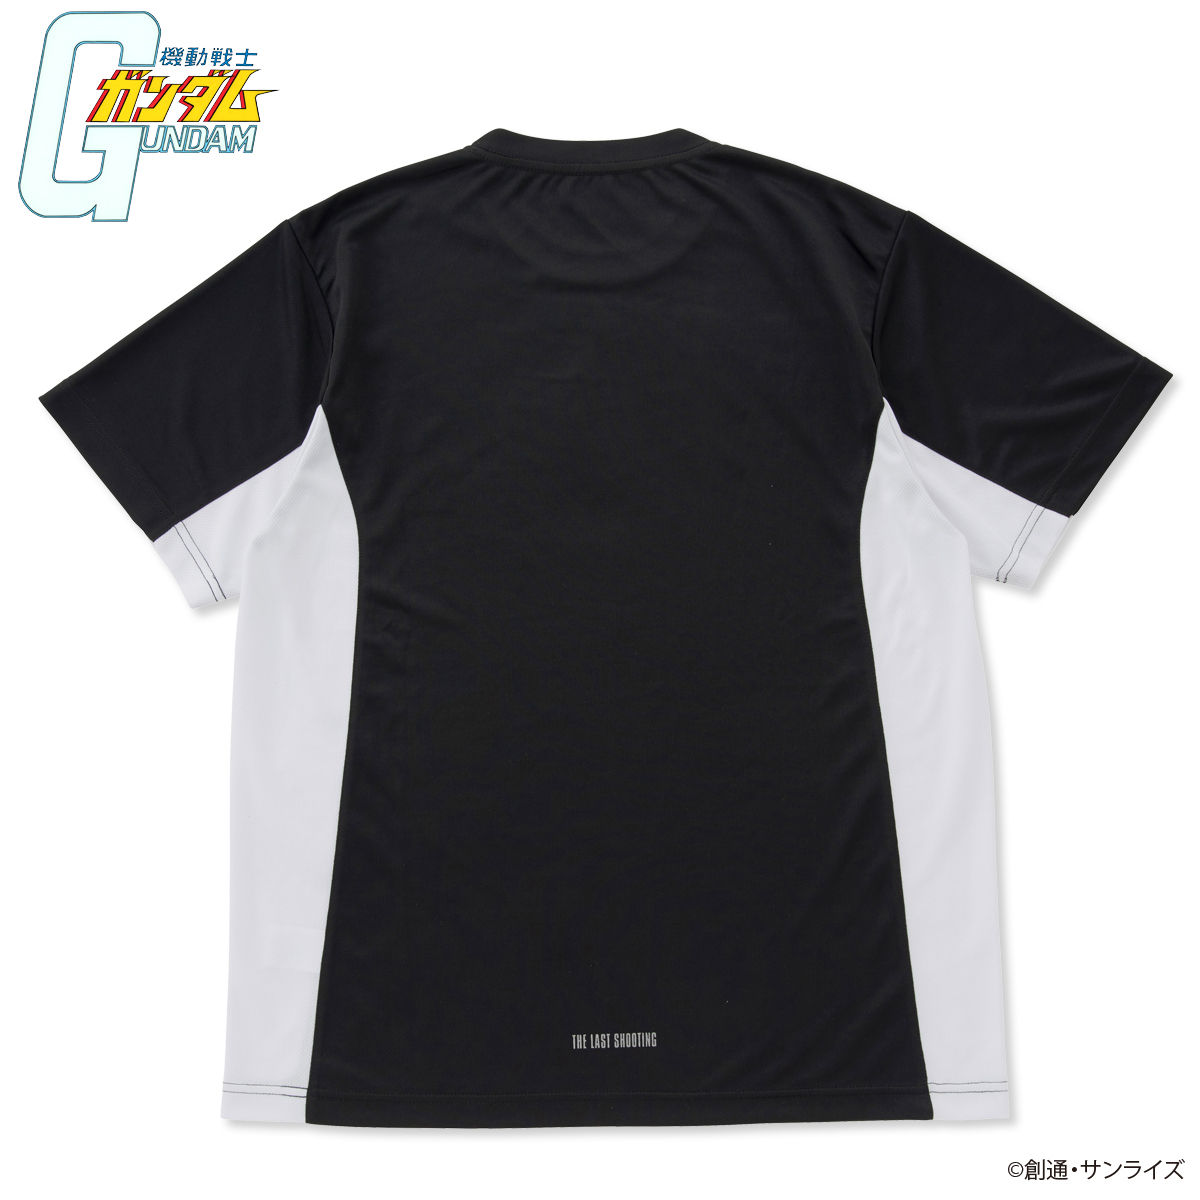 Mobile Suit Gundam The Last Shooting Running Workout T-Shirt